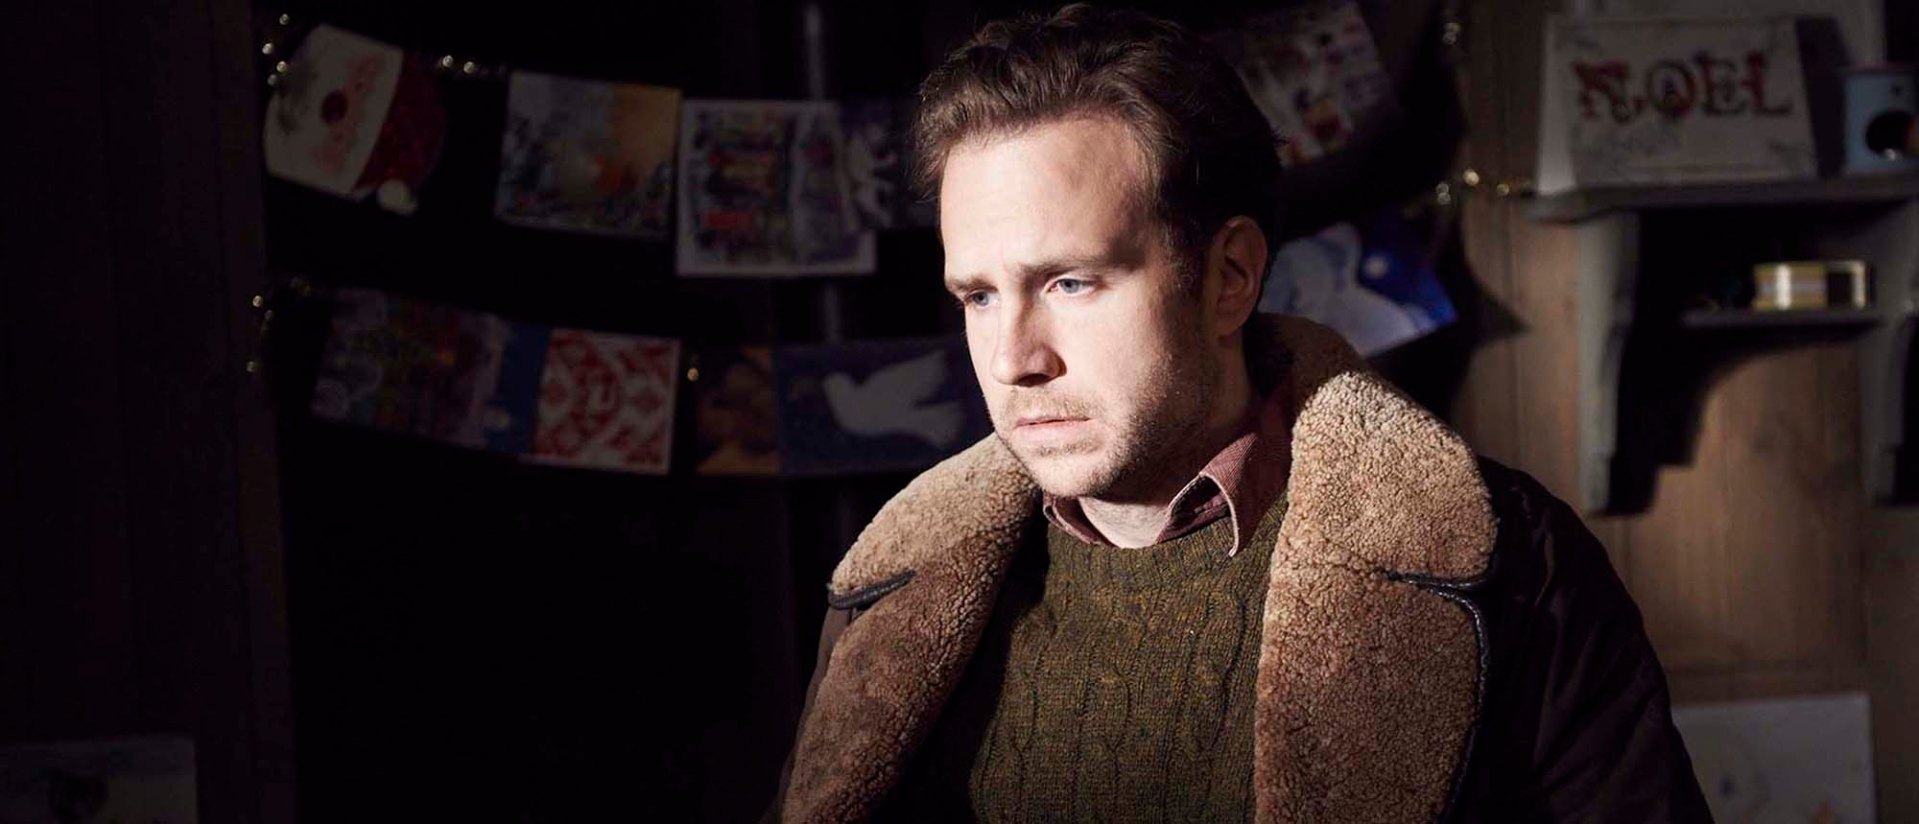 Black Mirror - Rafe Spall as Joe Potter